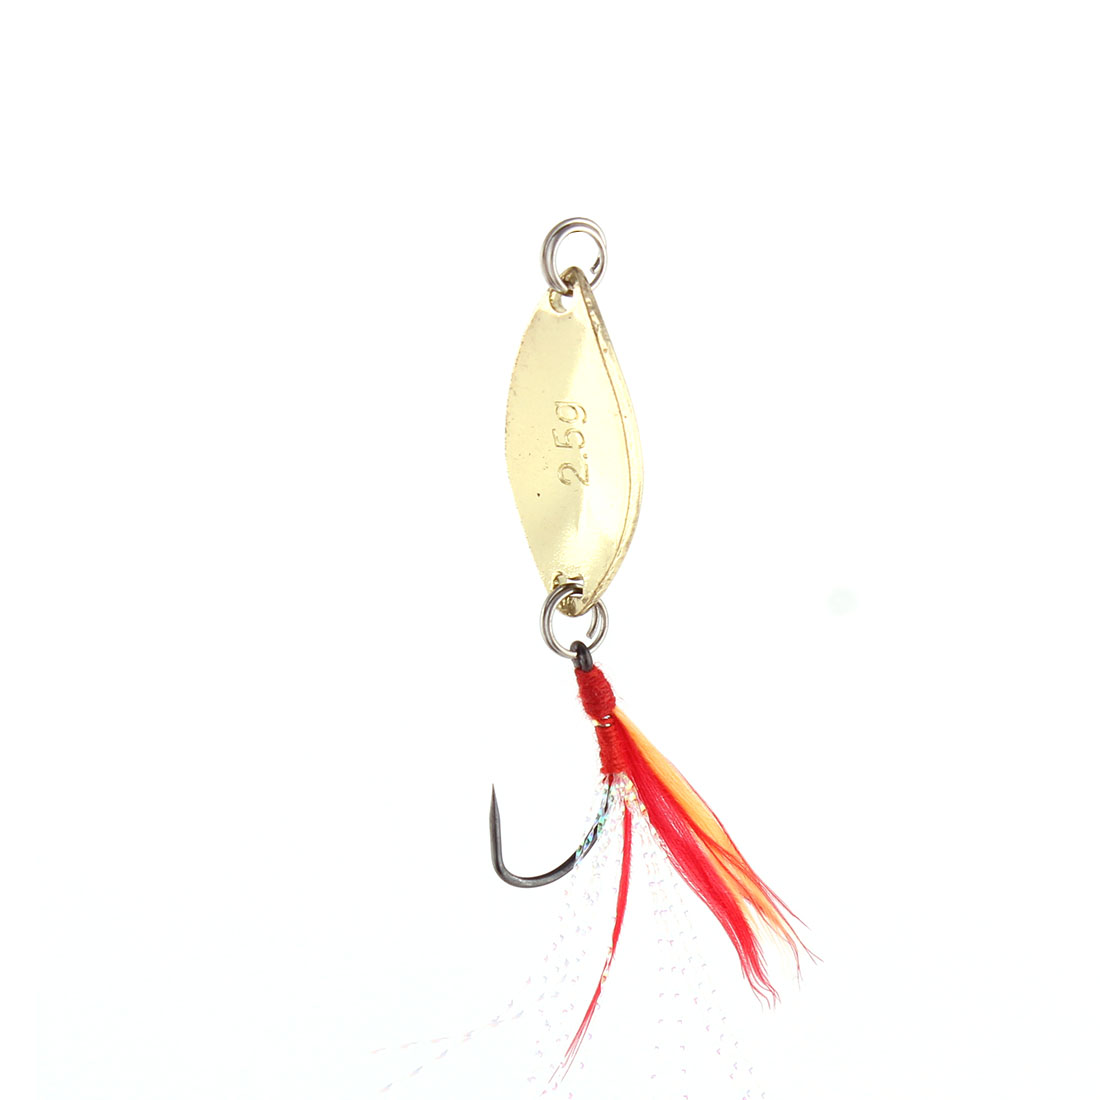 Outdoor Fishing Fish Angling Metal Reflective Barb Lure Hooks Gold Tone